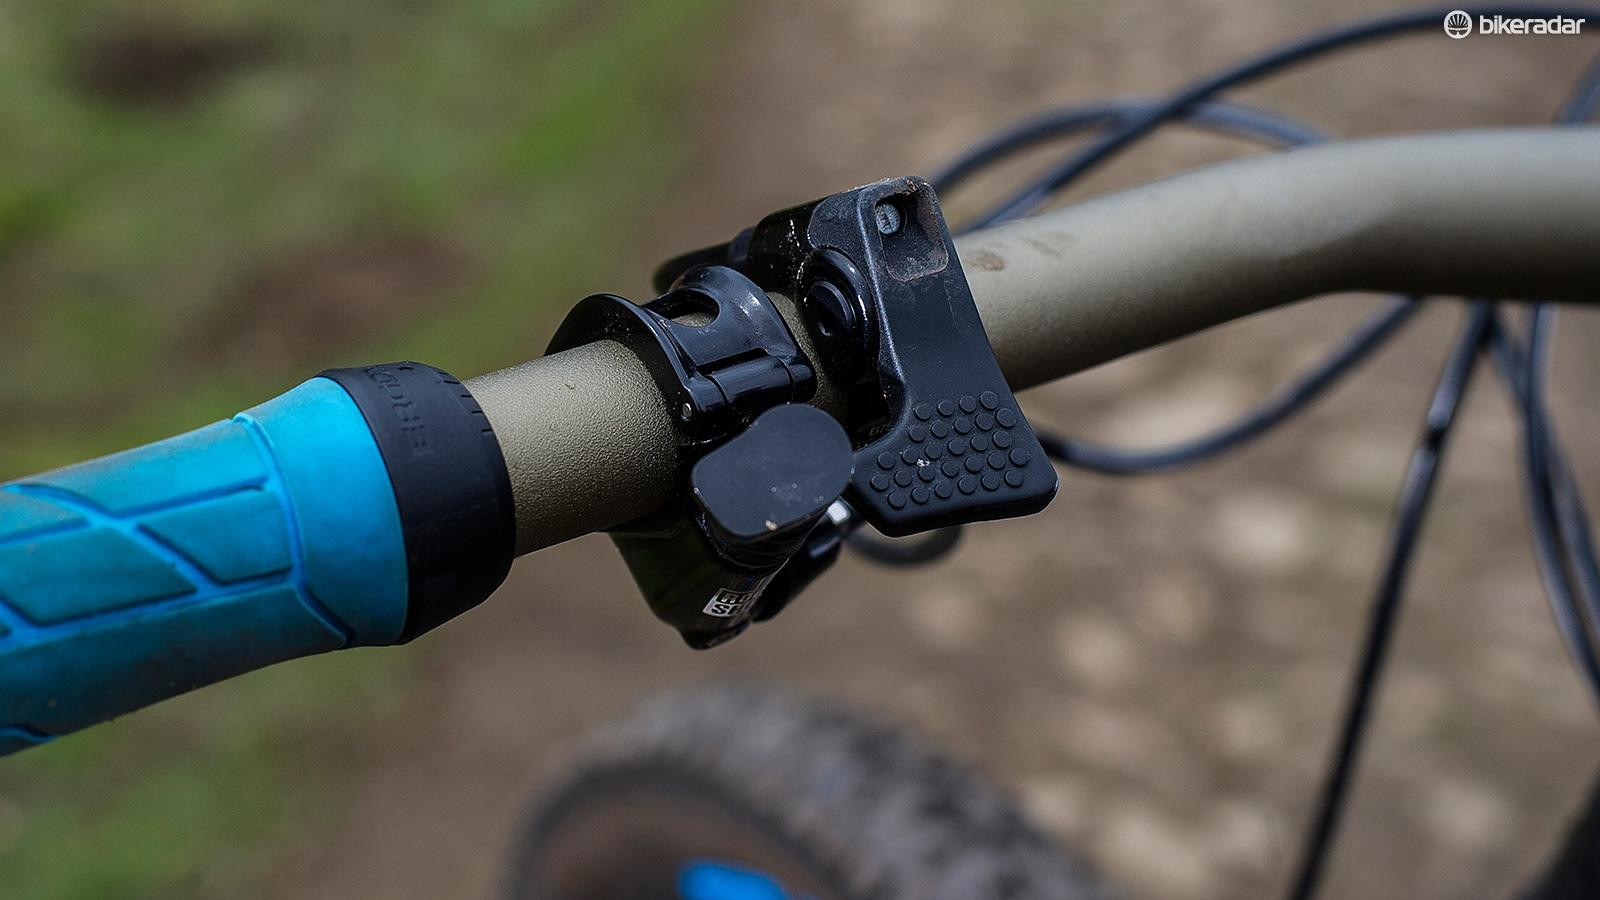 Unweight the rear end and press the bar button and you're instantly riding a sharper feeling but still long and stable trail bike